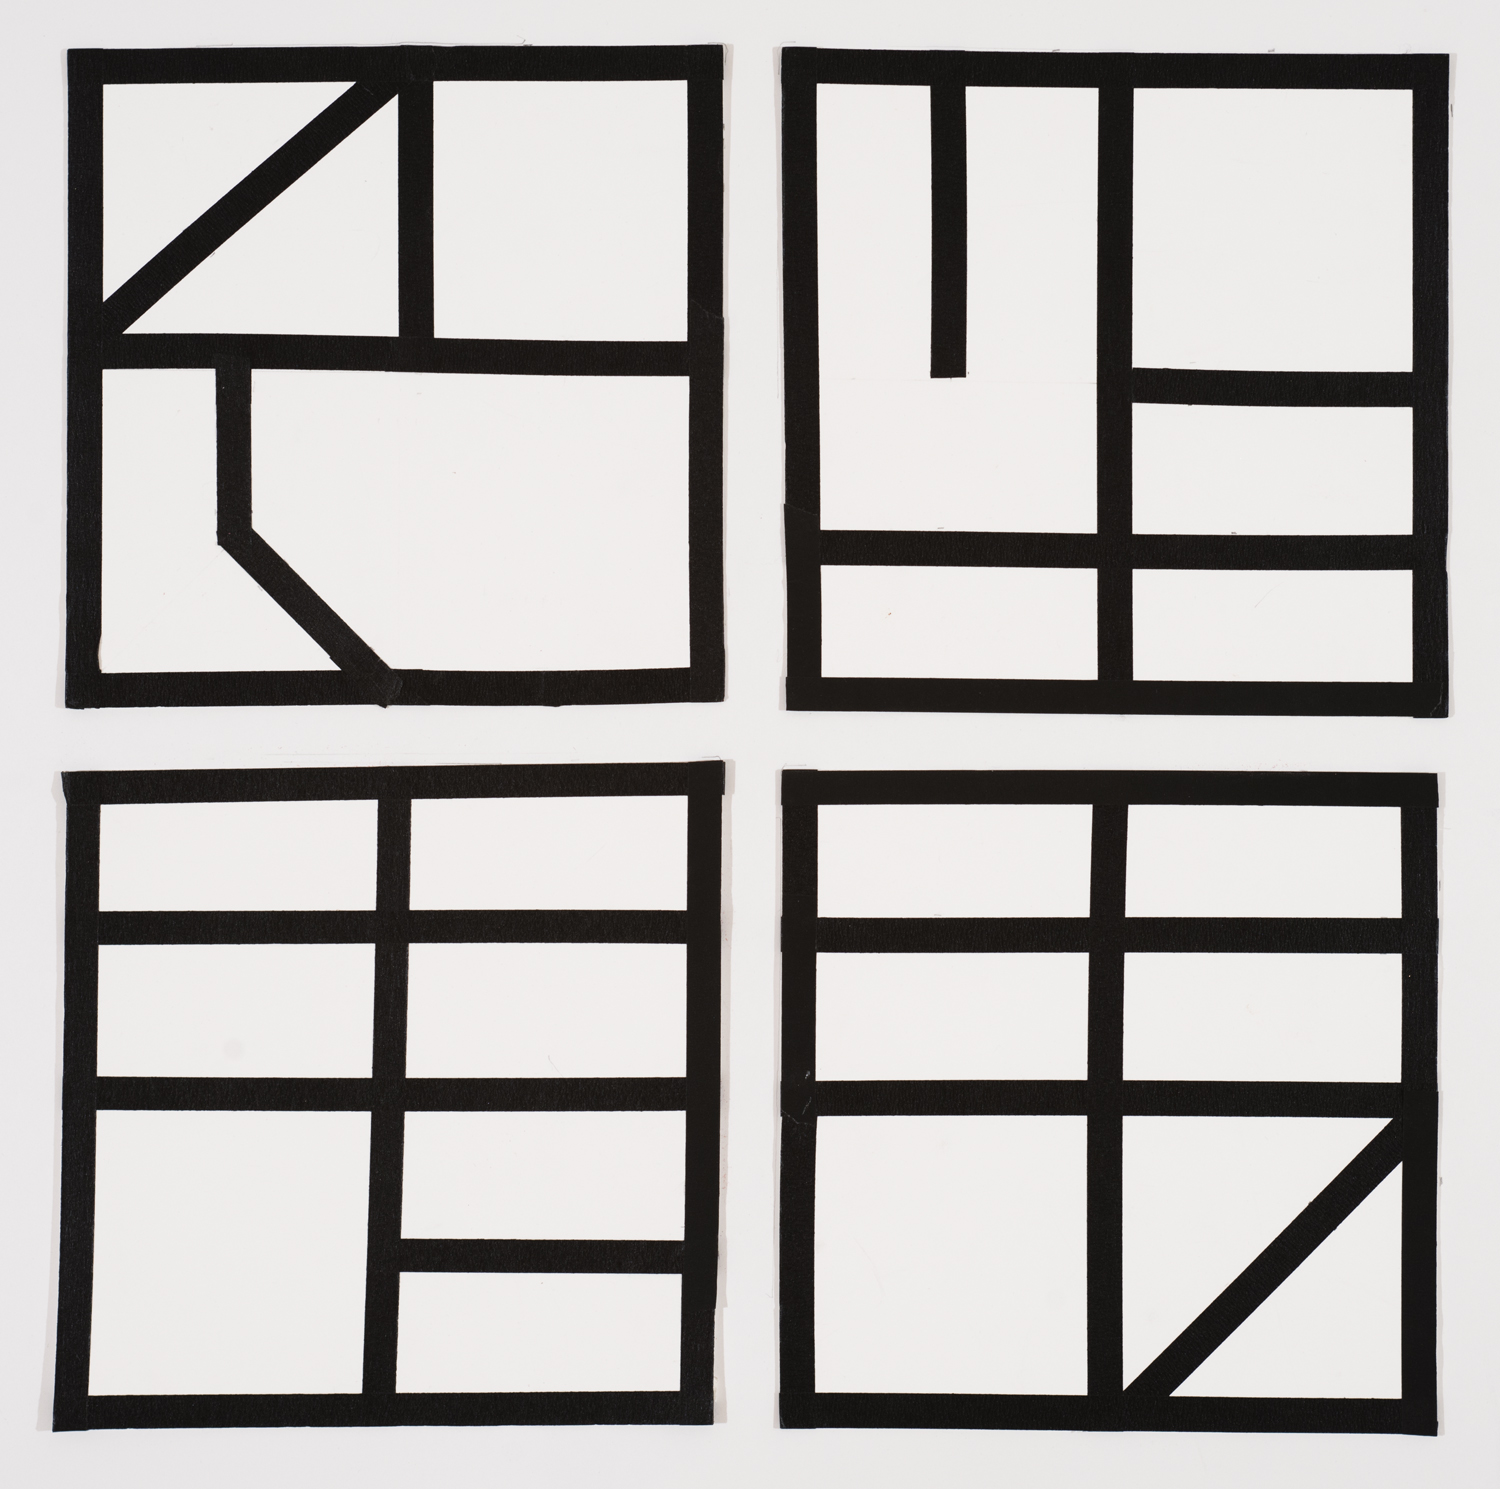 Small Letters,2014 Each drawing 9 by 9 inches Tape on paper